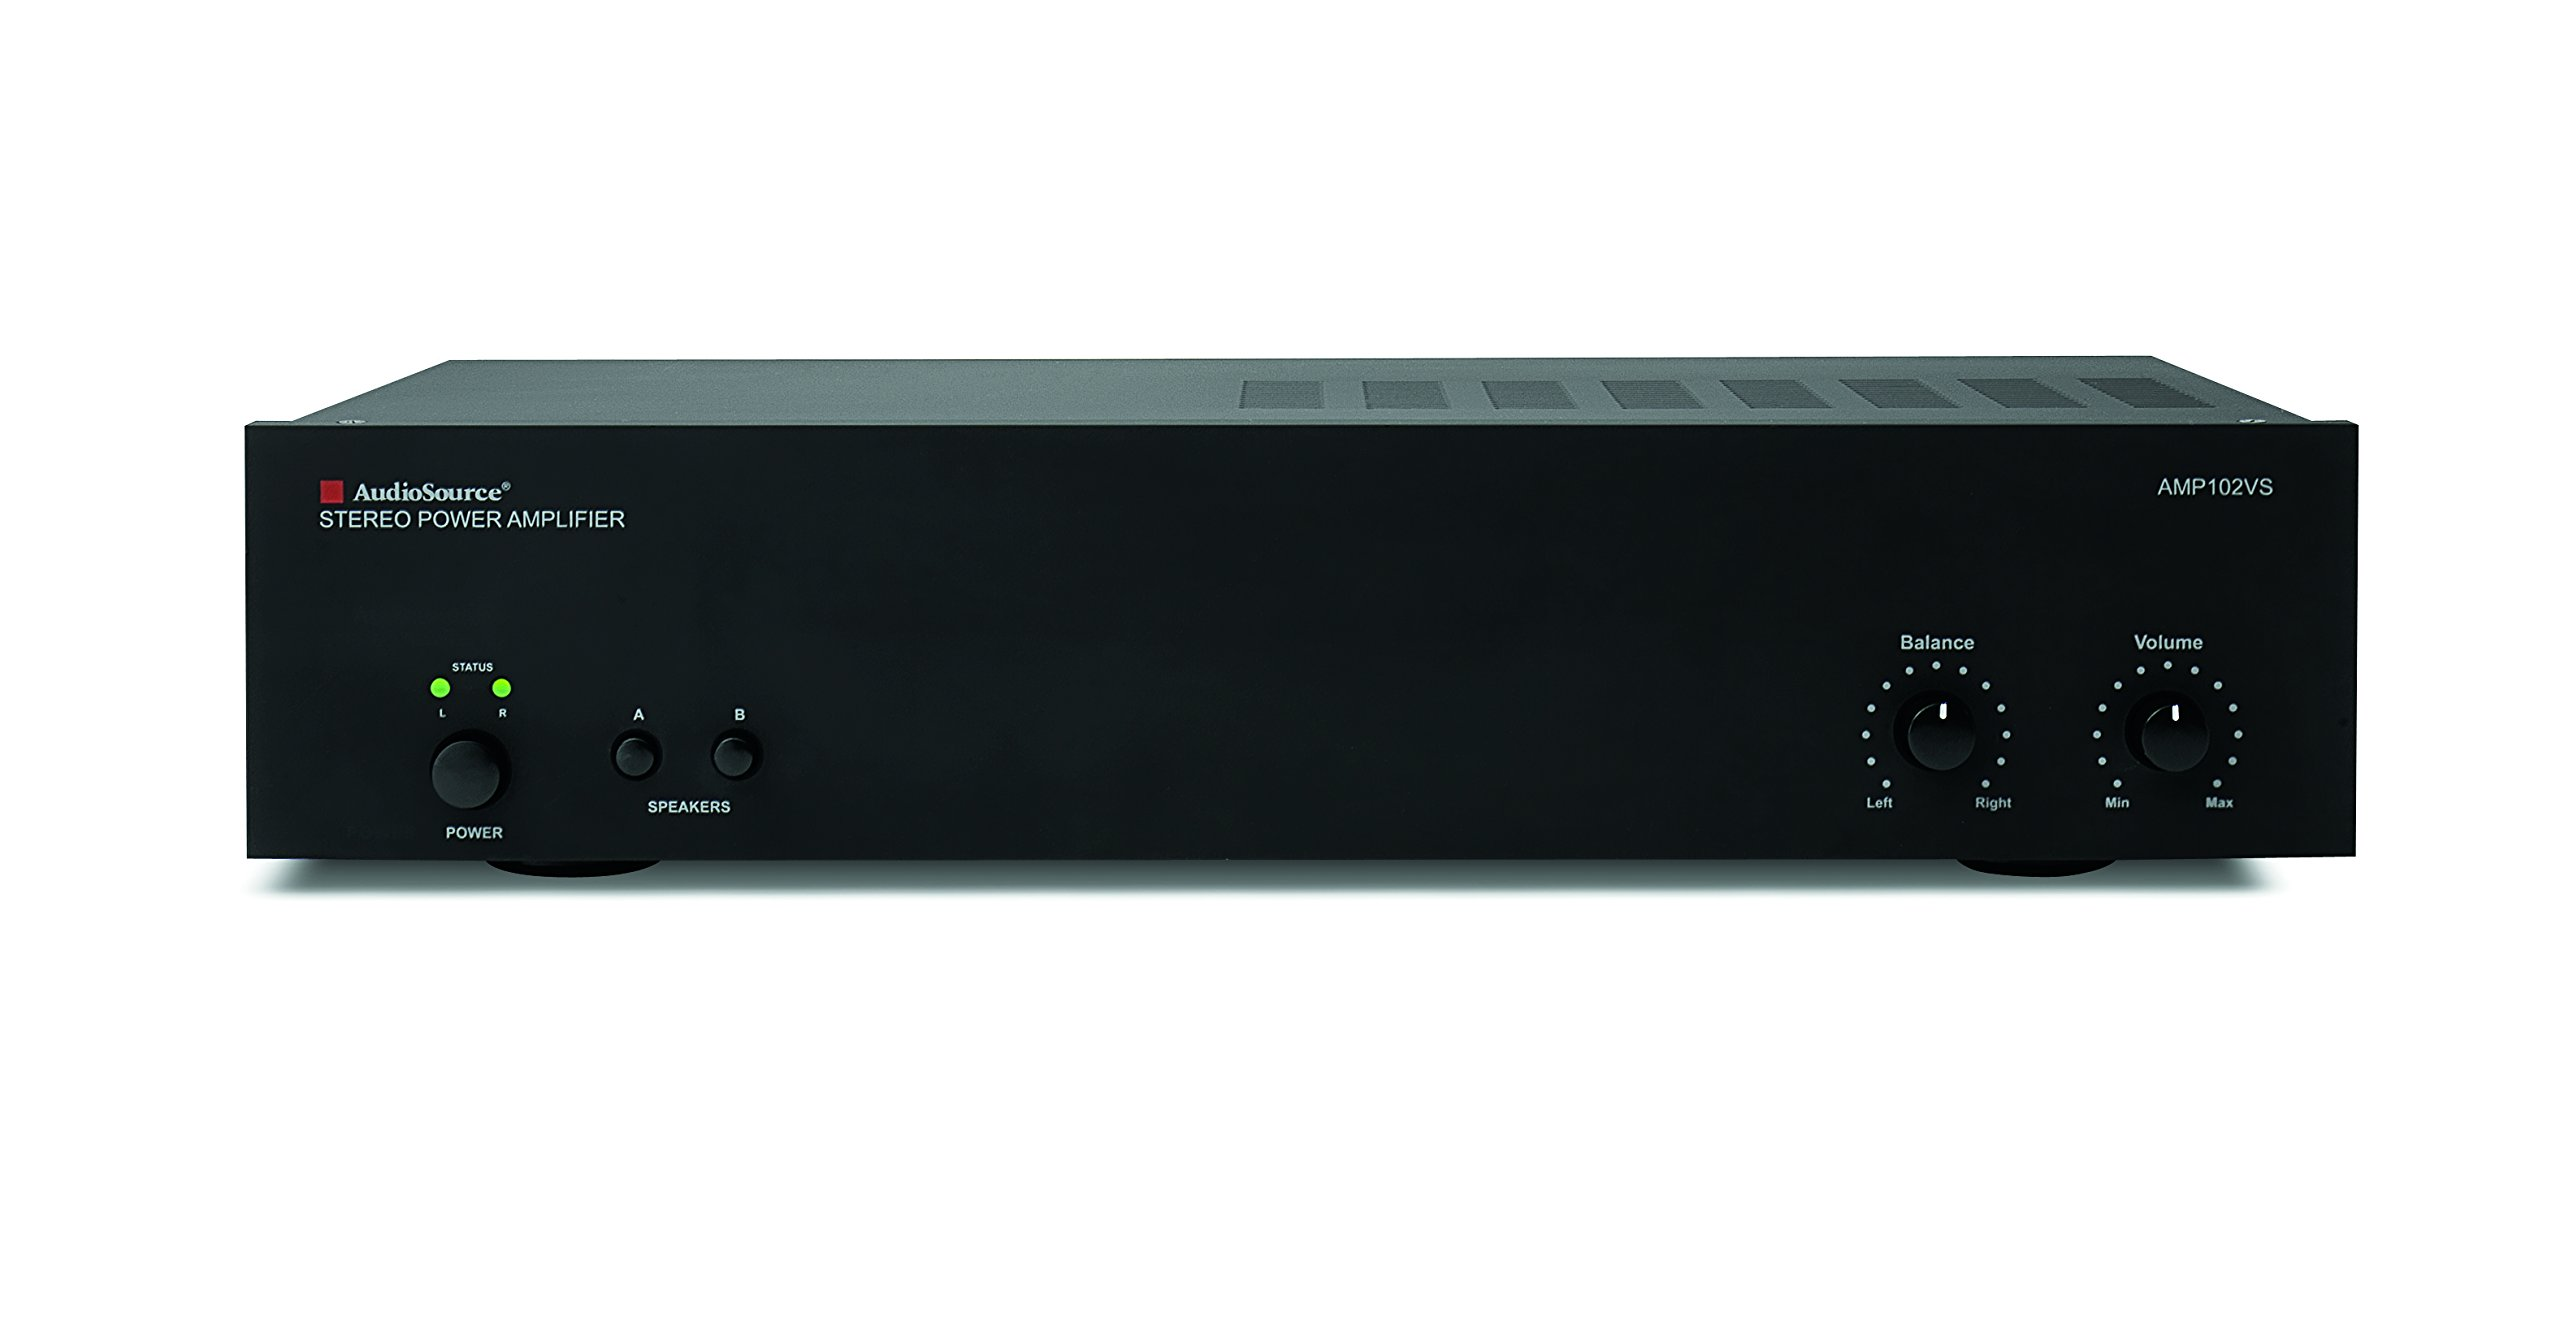 Audio Source AMP102VS 2 Channel Amplifier (Black) by Audiosource